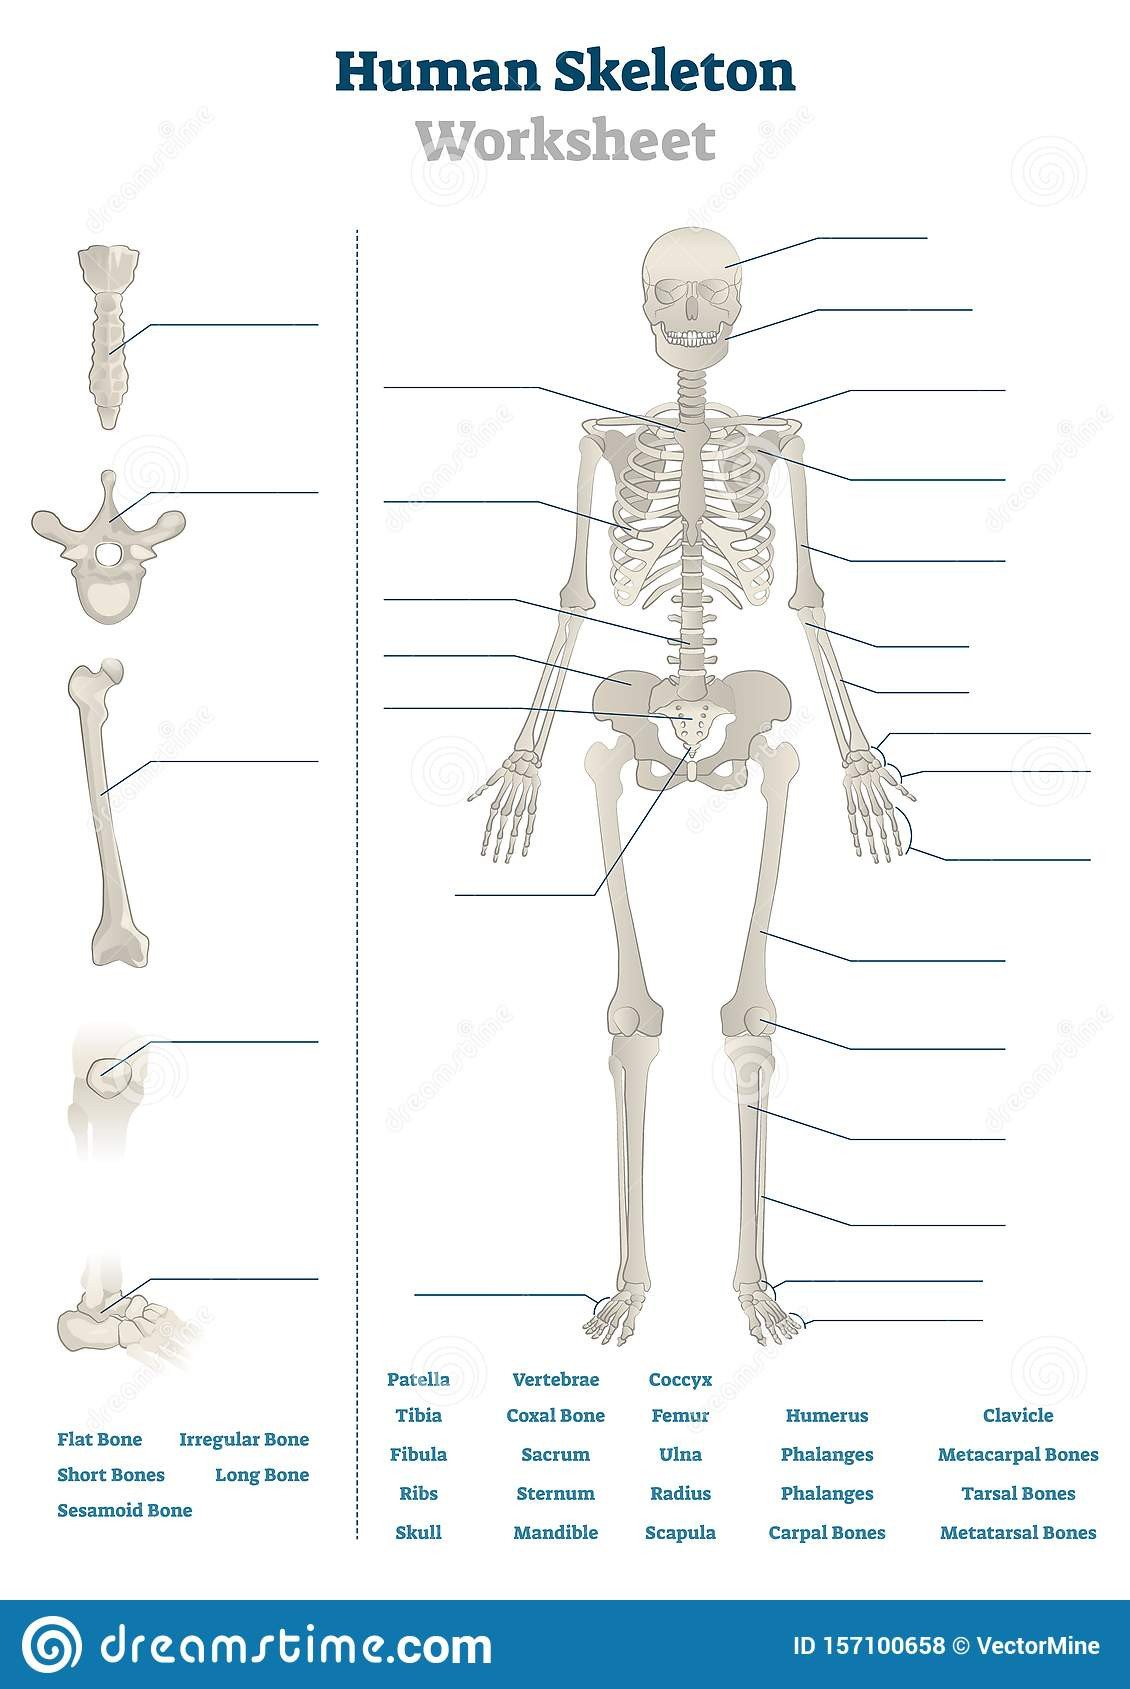 Blank Muscle Diagram Worksheet Human Skeleton Worksheet Vector Illustration Blank